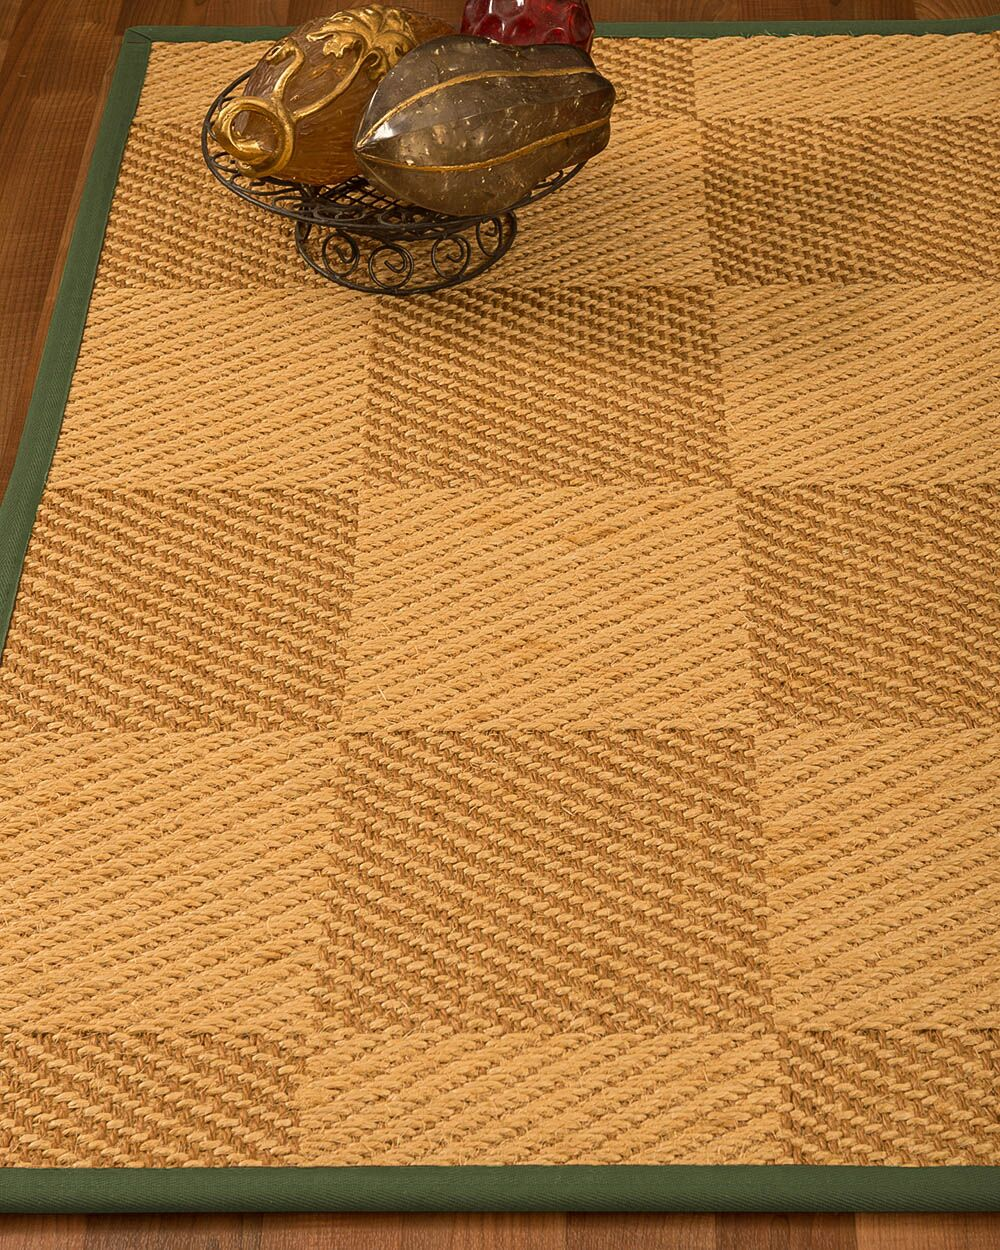 Luhrmann Handwoven Flatweave Beige/Brown Area Rug Rug Size: Rectangle 2' X 3'